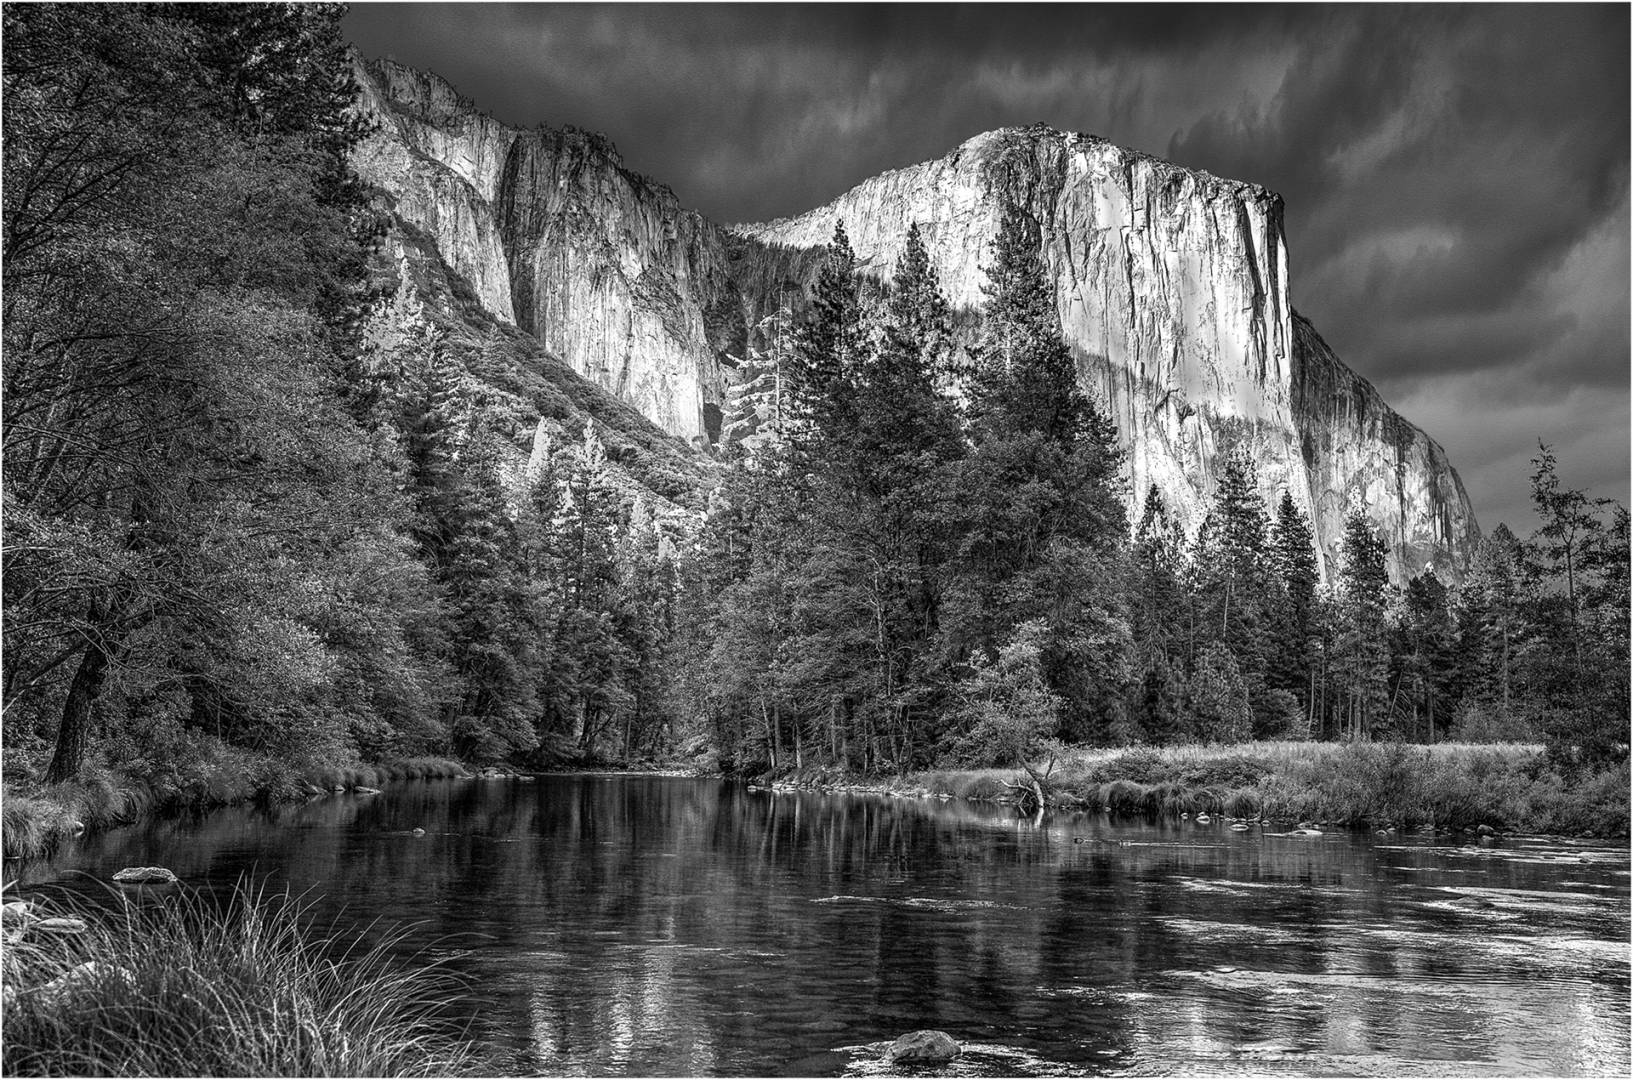 El Capitan – taken a number of years ago with a Leica M9 Monochrom and Tri-Elmar lens set at 50mm